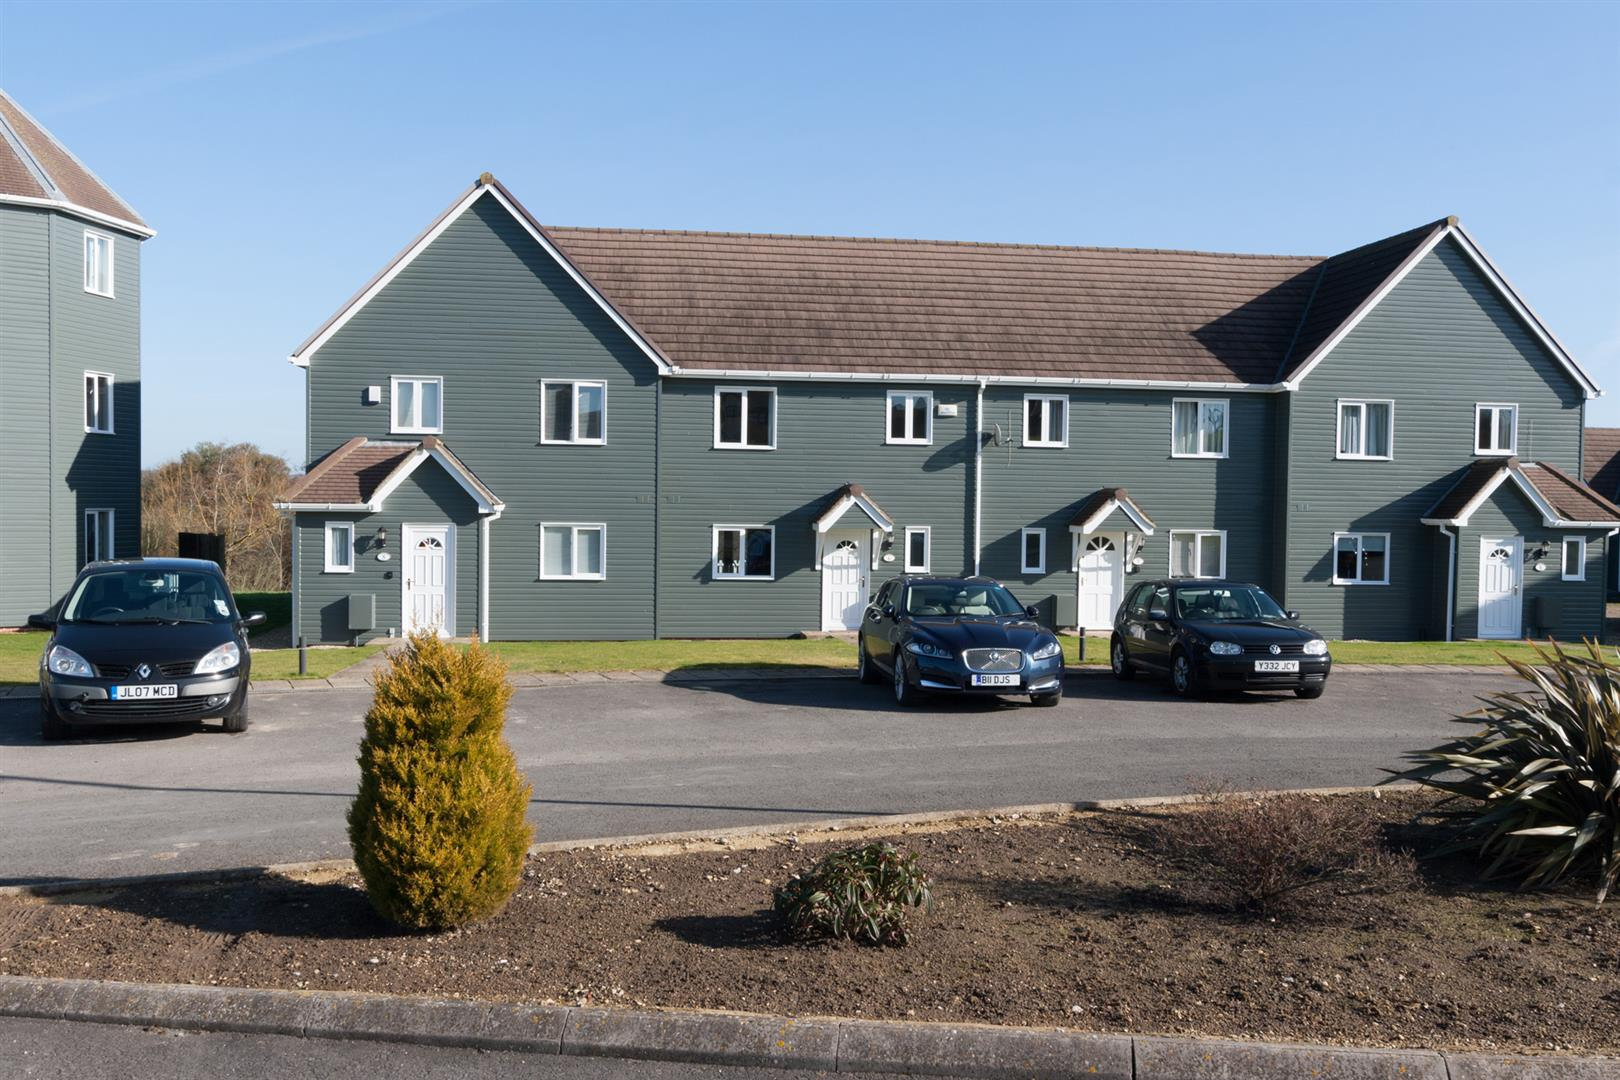 3 Bedrooms Terraced House for sale in The Wiltshire Leisure Village, Royal Wootton Bassett